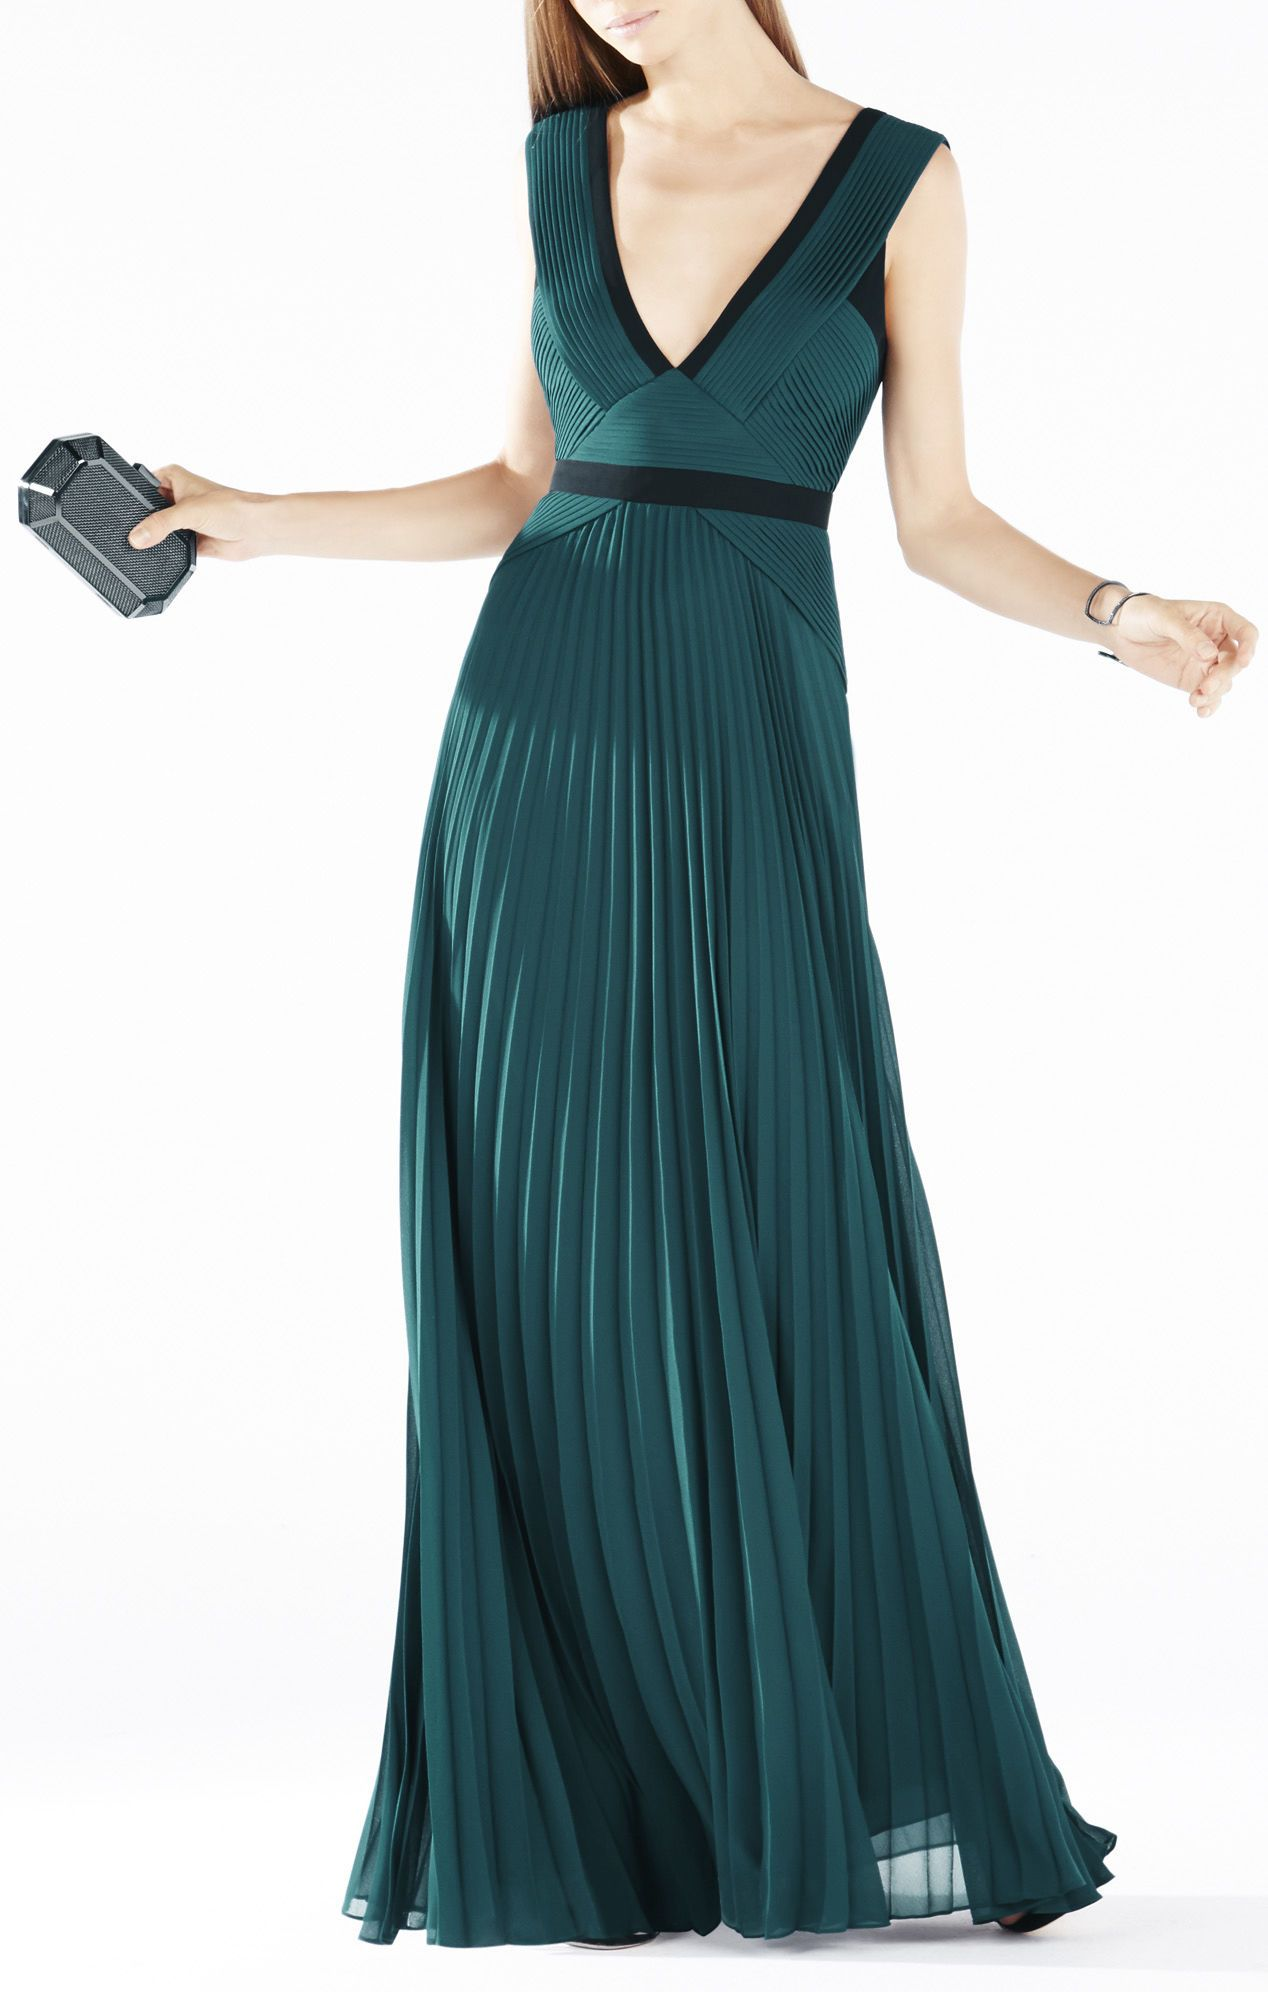 Evianna Color-Blocked Pleated Gown | Wicked ✳ | Pinterest | Color ...